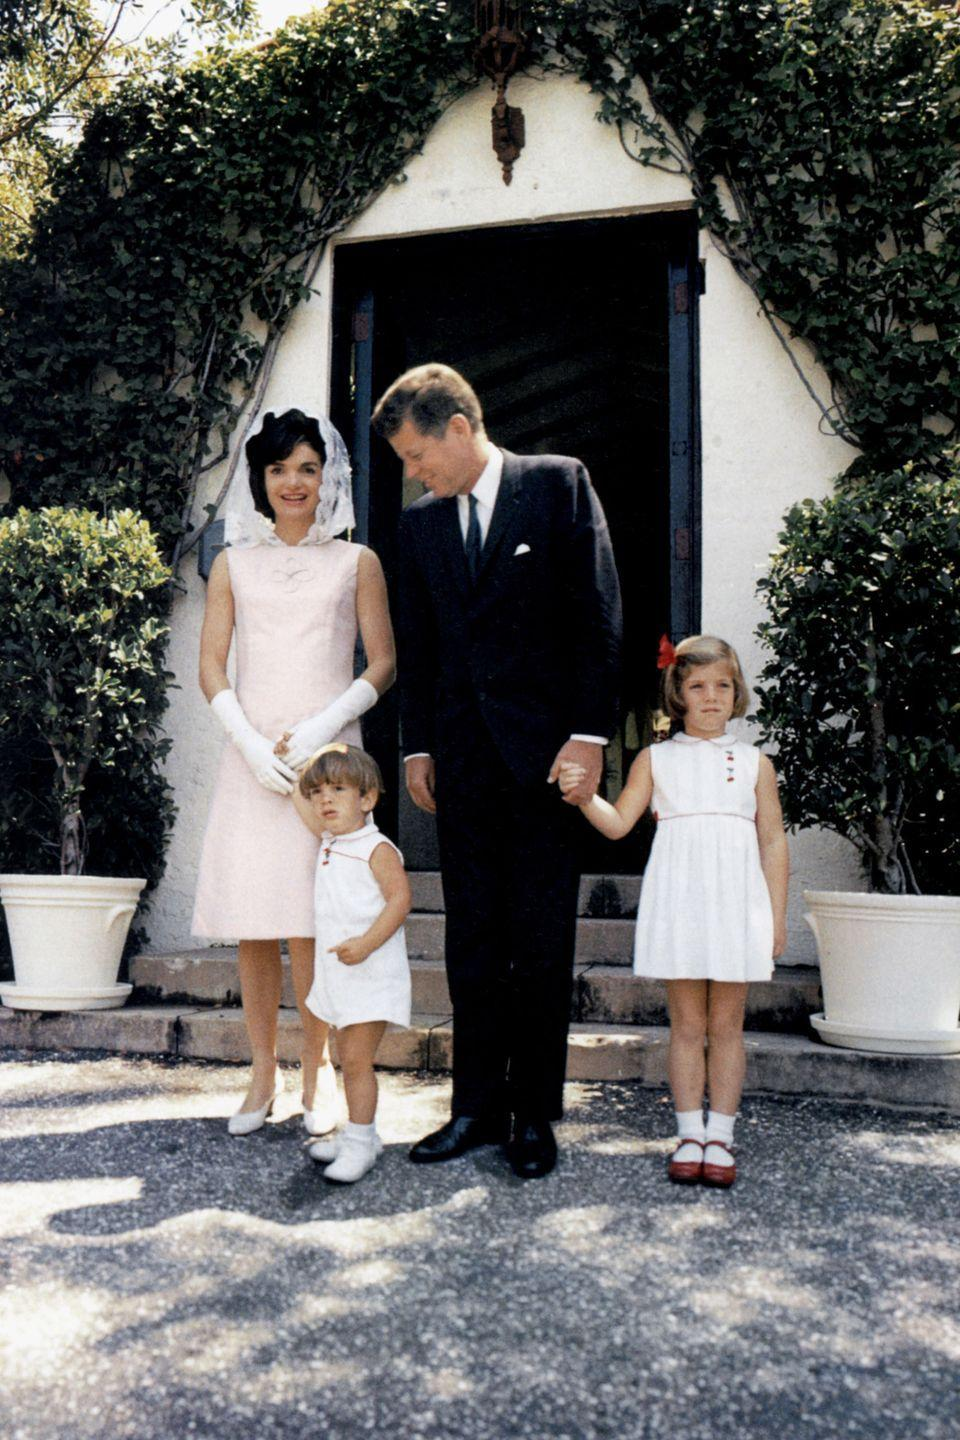 <p>The early 60s were all about Palm Springs. Here, Jackie, Caroline, John Jr. and John F. Kennedy hit the Cali hot spot in white Mommy and Me looks, save JFK in a black suit. </p>